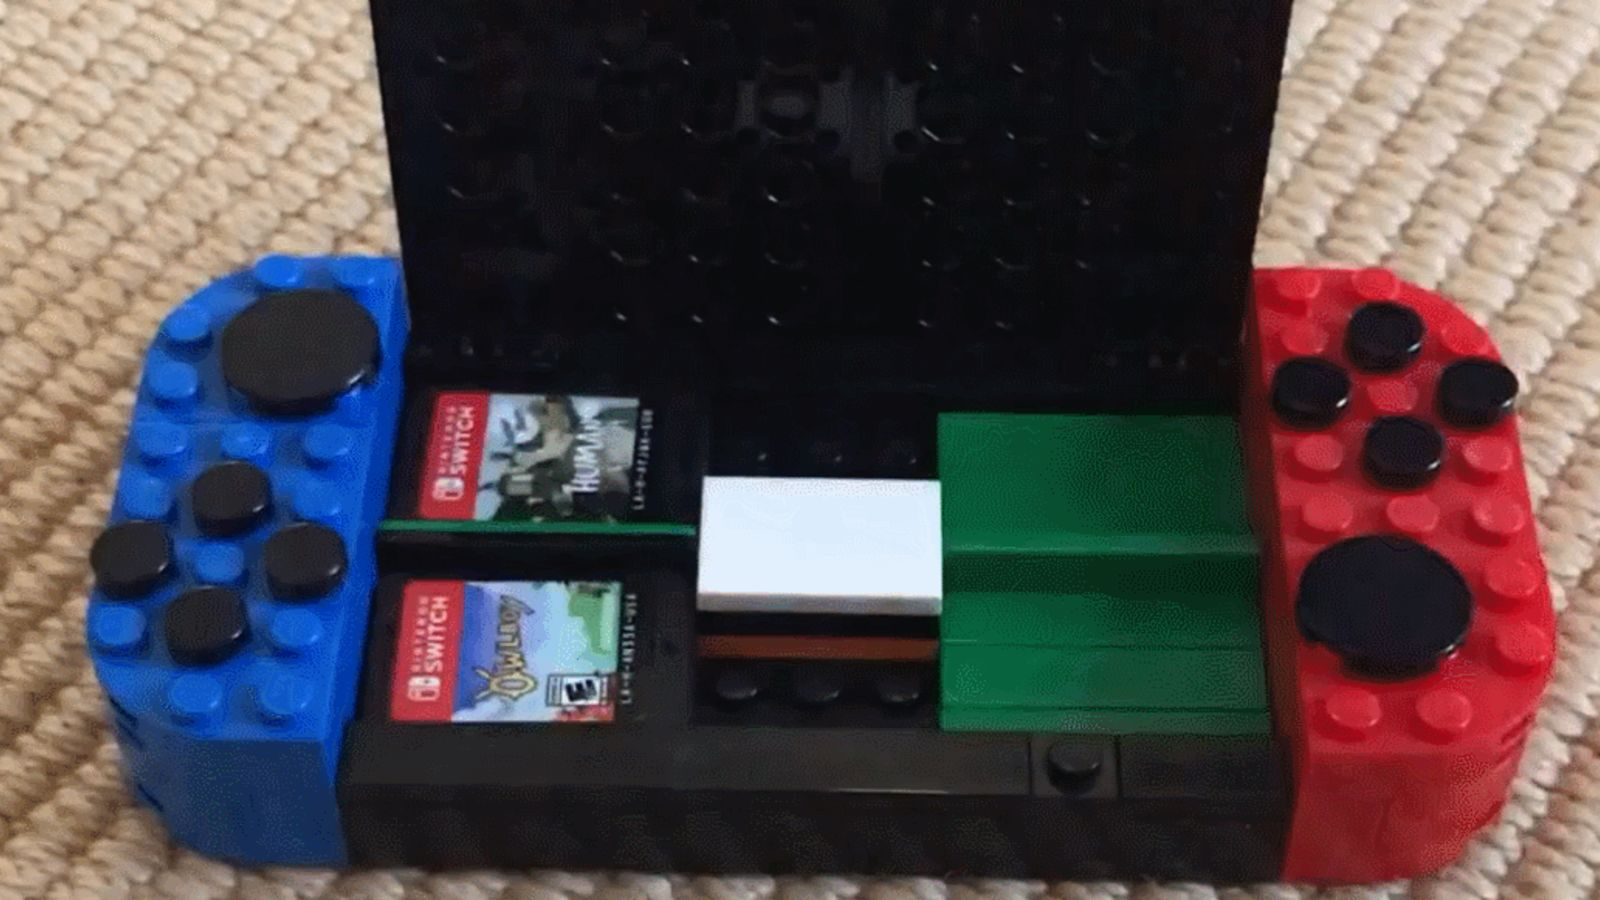 Nifty Moc Featured On Reddit Nintendo Switch Shaped Game Card Storage Case The Brick Show